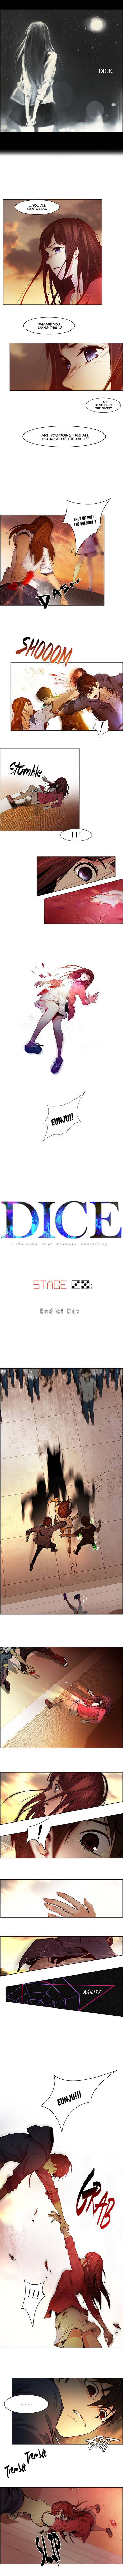 DICE: the cube that changes everything 35 Page 1